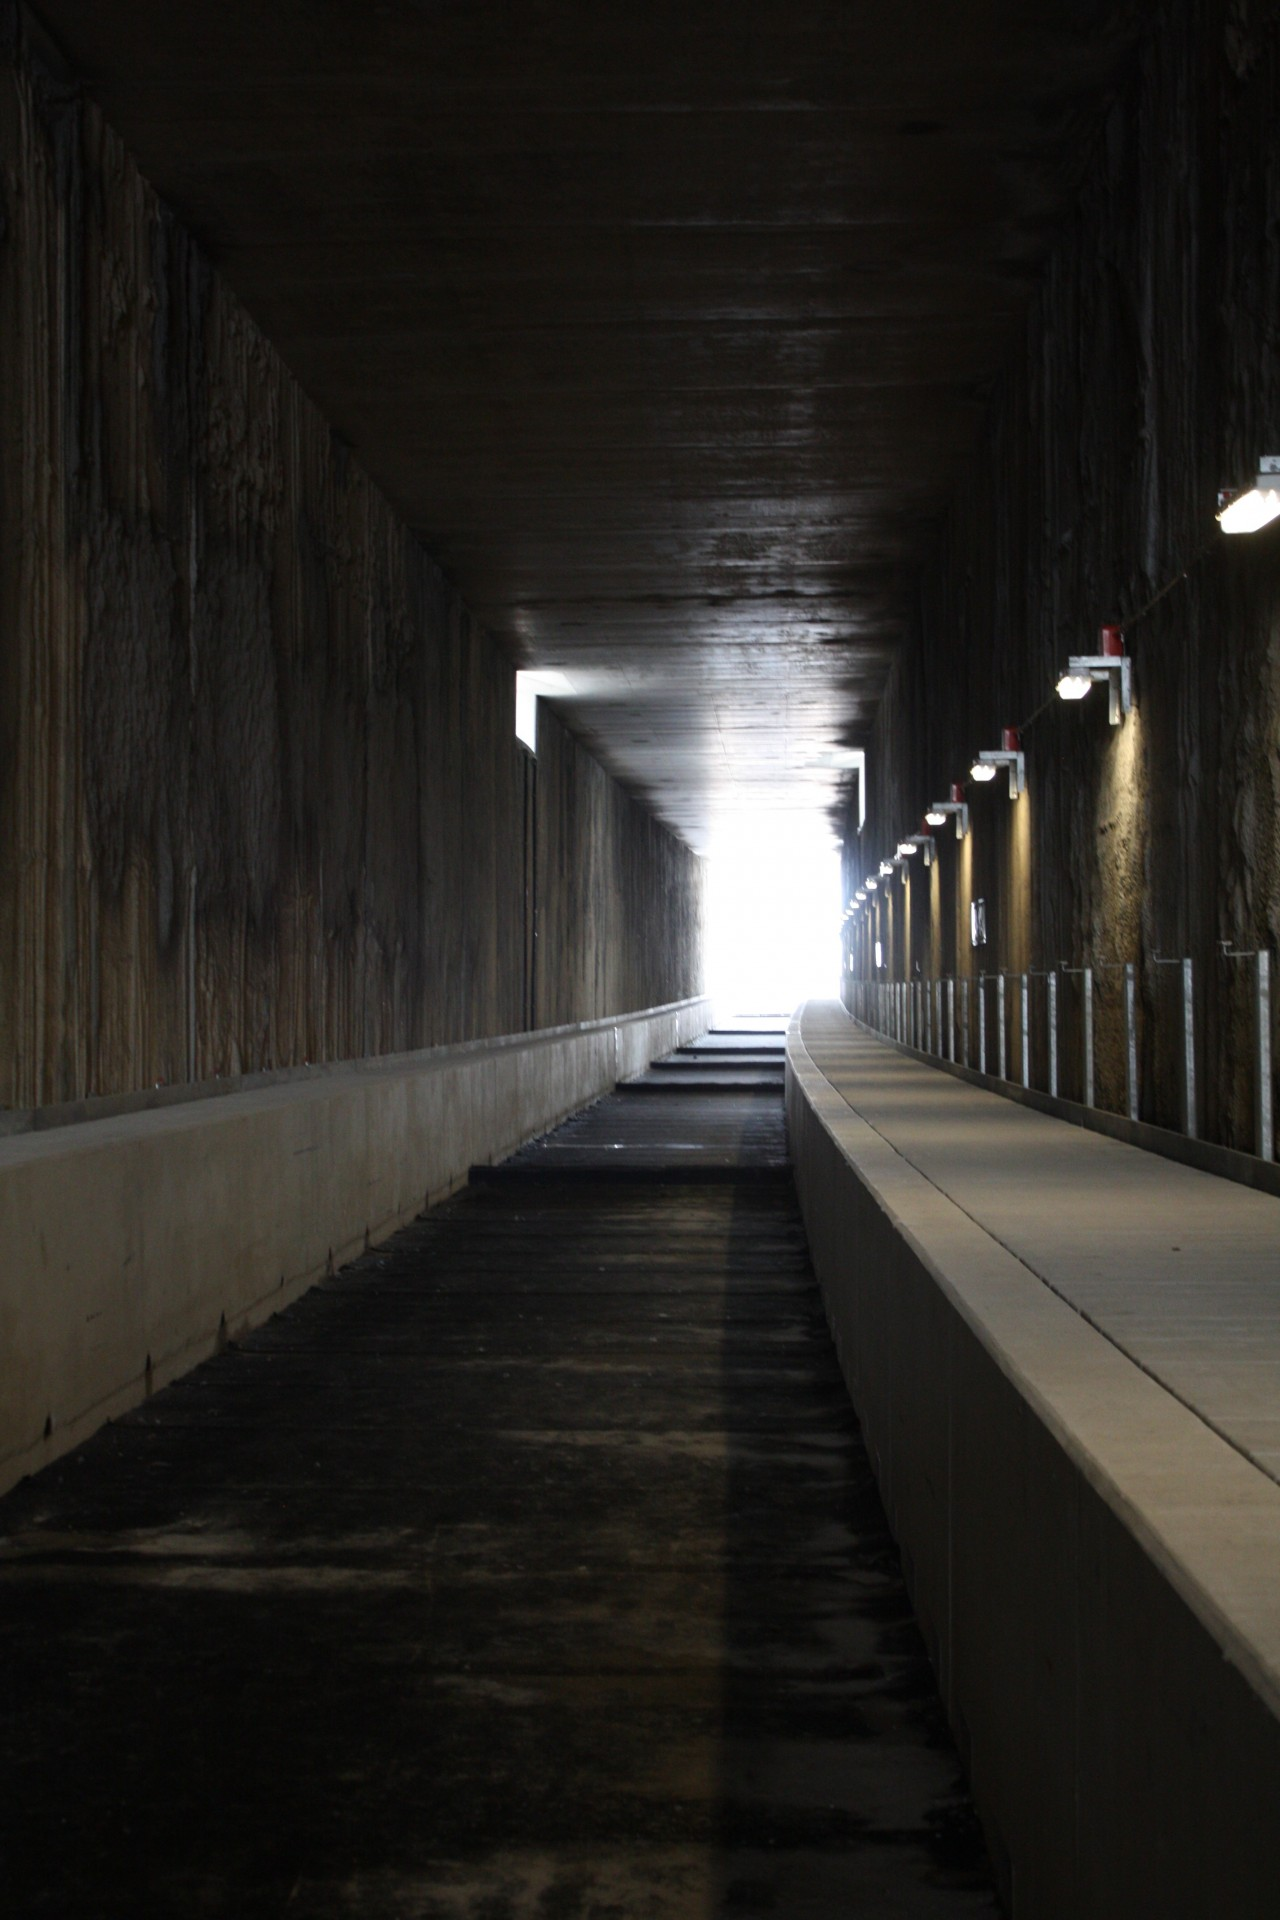 Inside of the tunnel